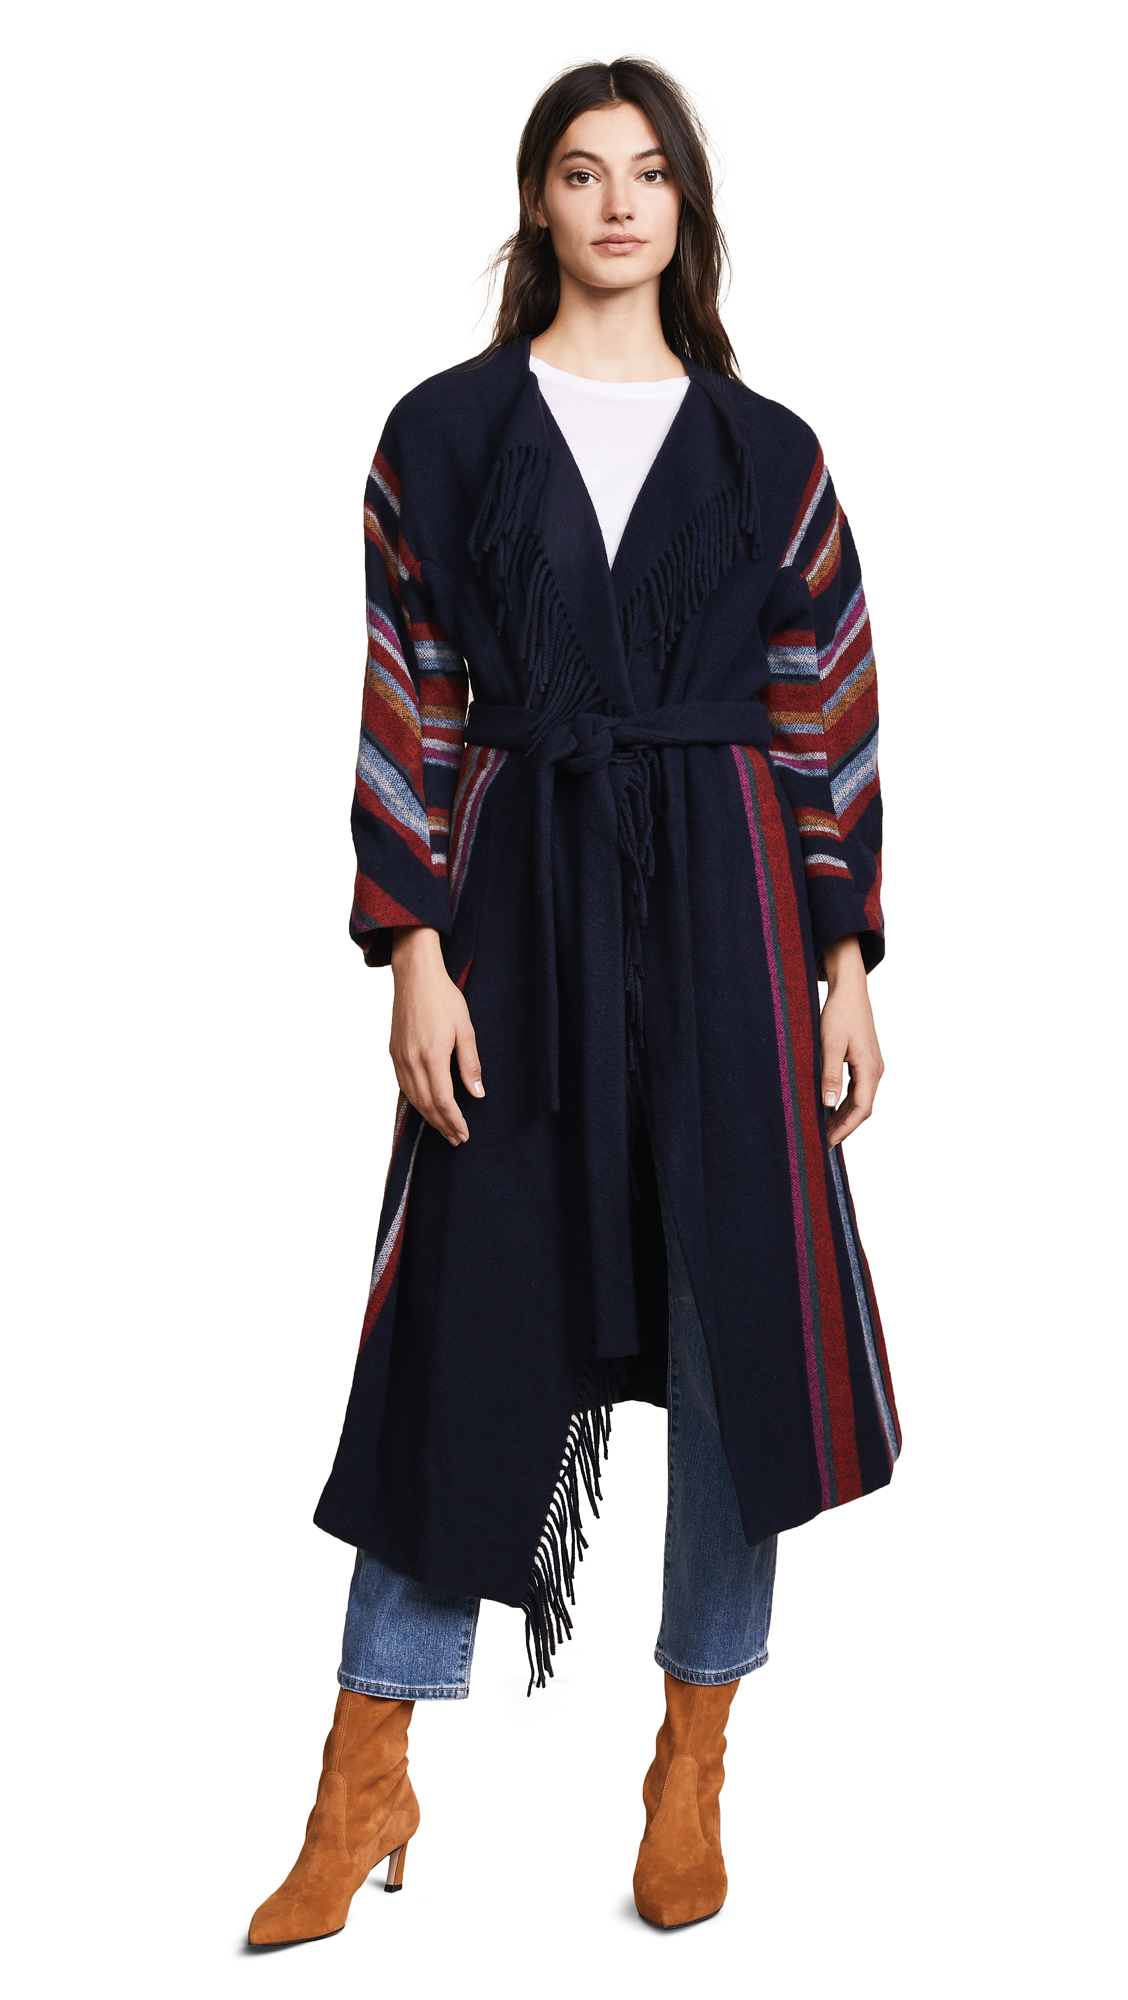 Tory Burch Alice Coat In Vivid Stripe